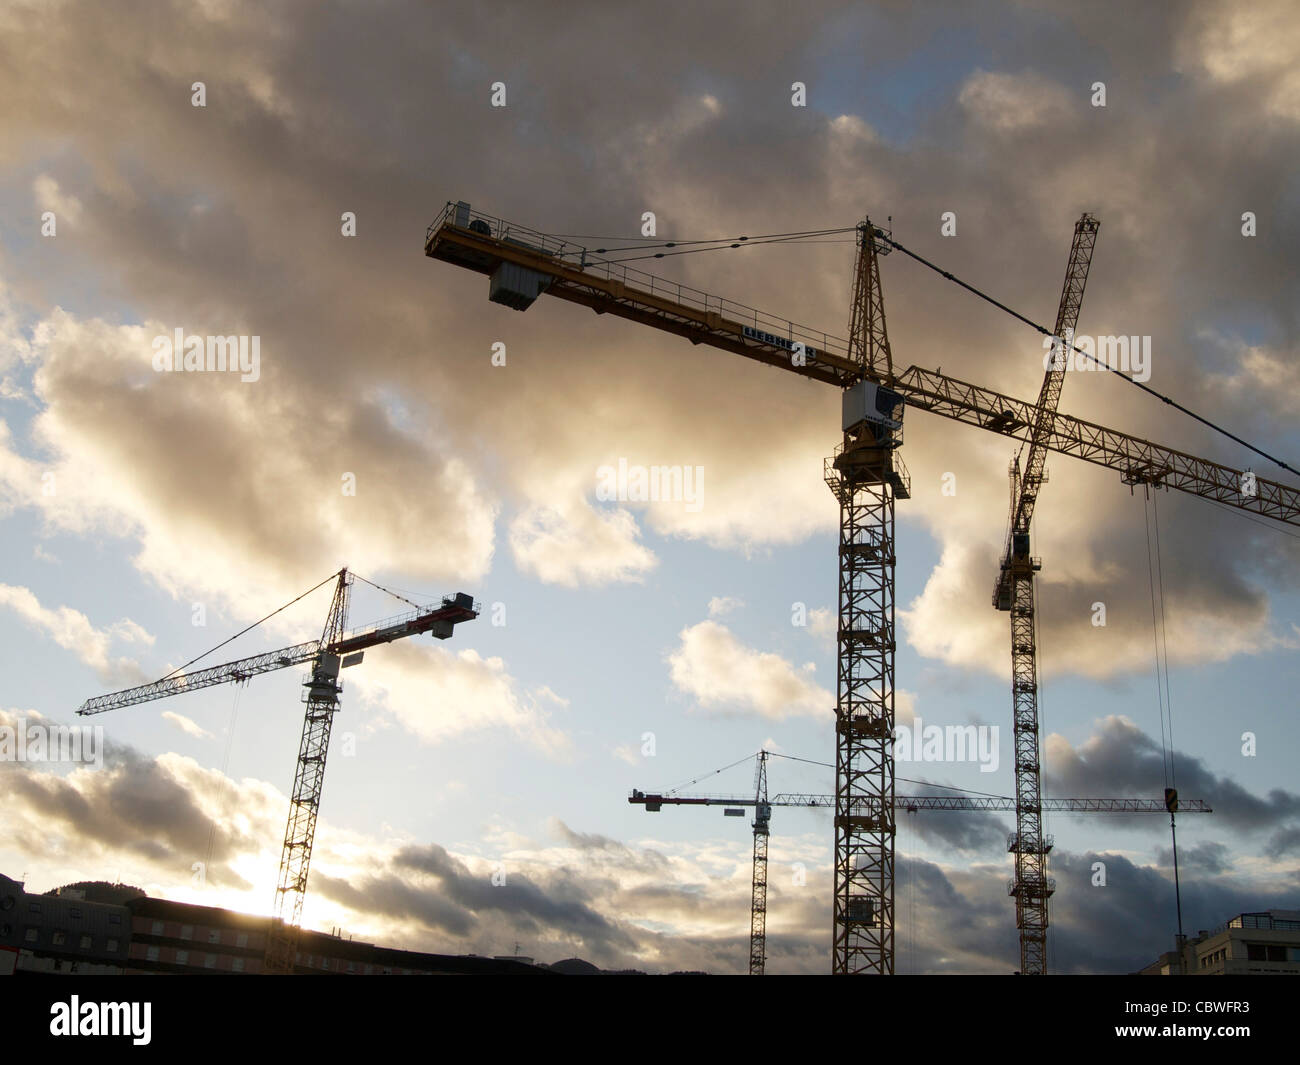 Tall cranes on a construction site - Stock Image